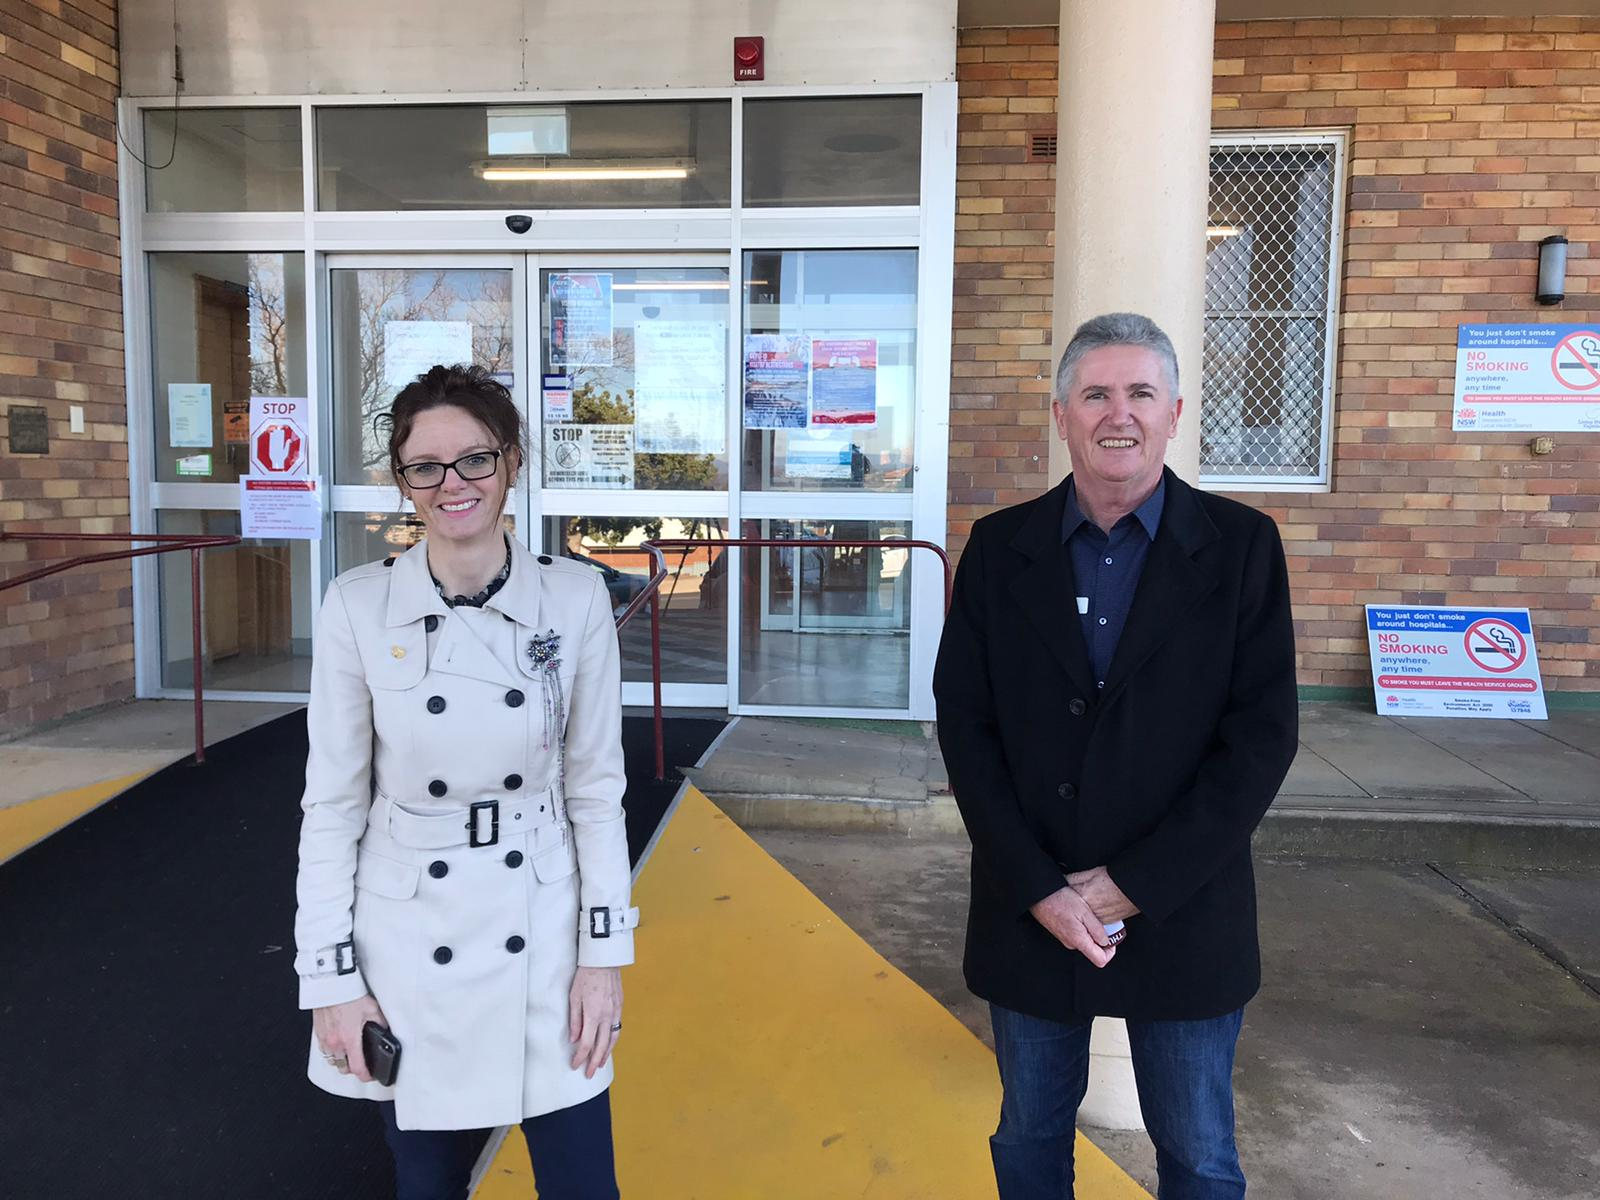 Steph Cooke MP and Robert Mills stand in front of the Cowra Hospital. They both wear jackets and smile at the camera.